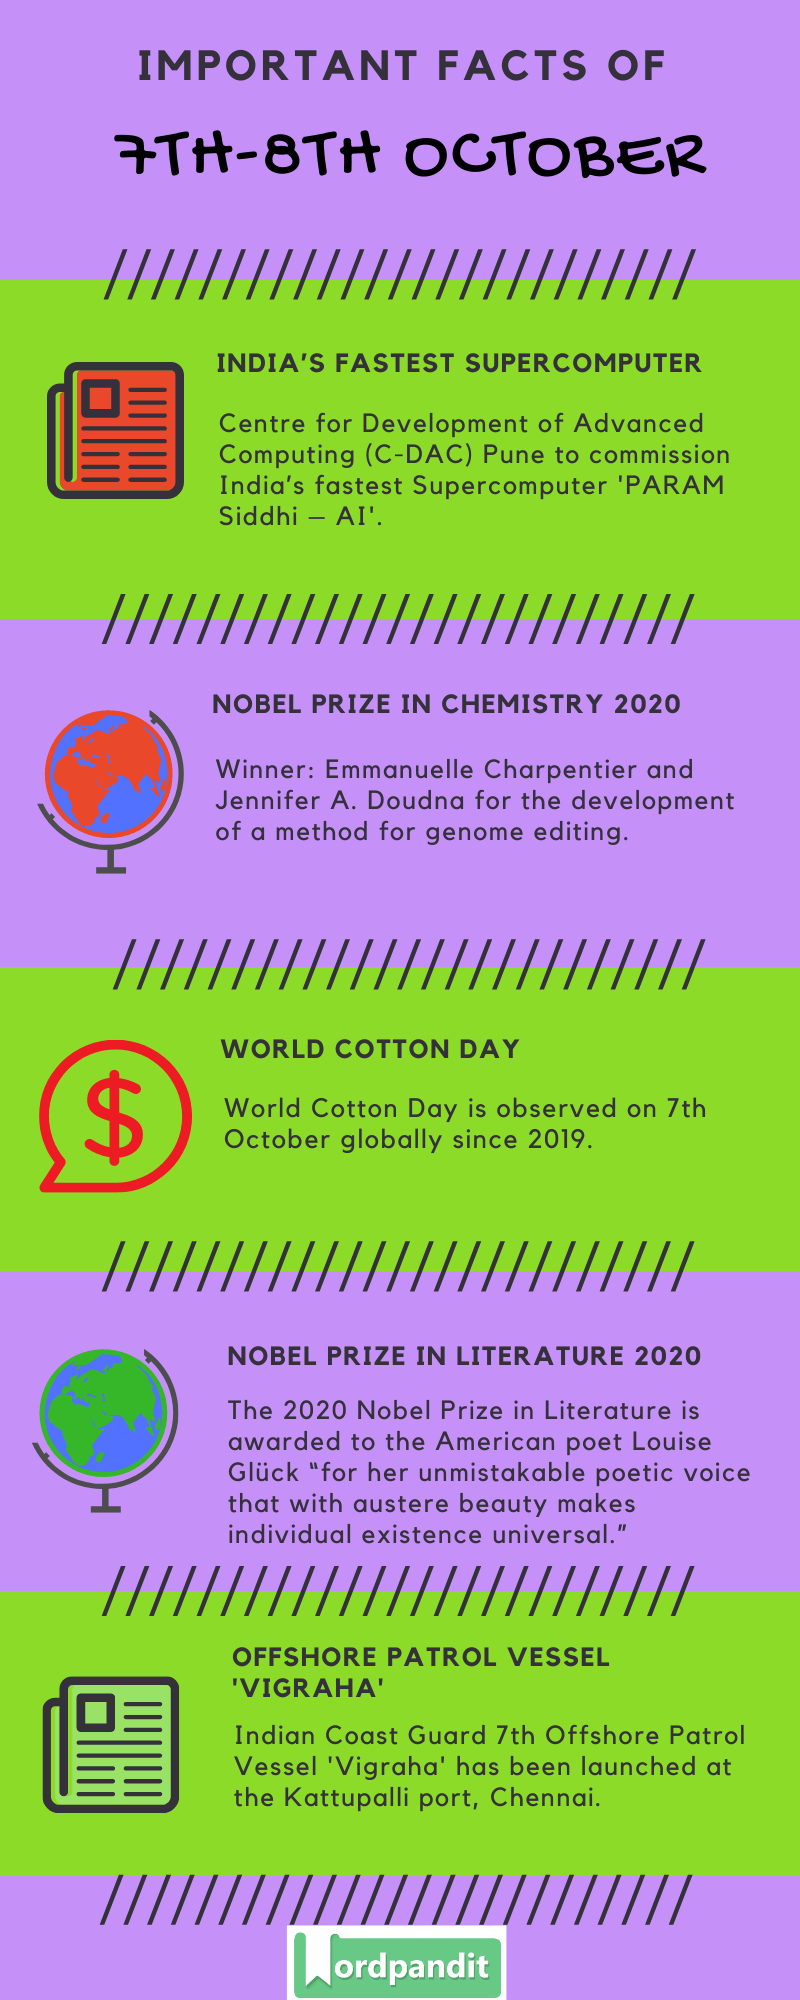 Daily Current Affairs 7th-8th October 2020 Current Affairs Quiz 7th-8th October 2020 Current Affairs Infographic